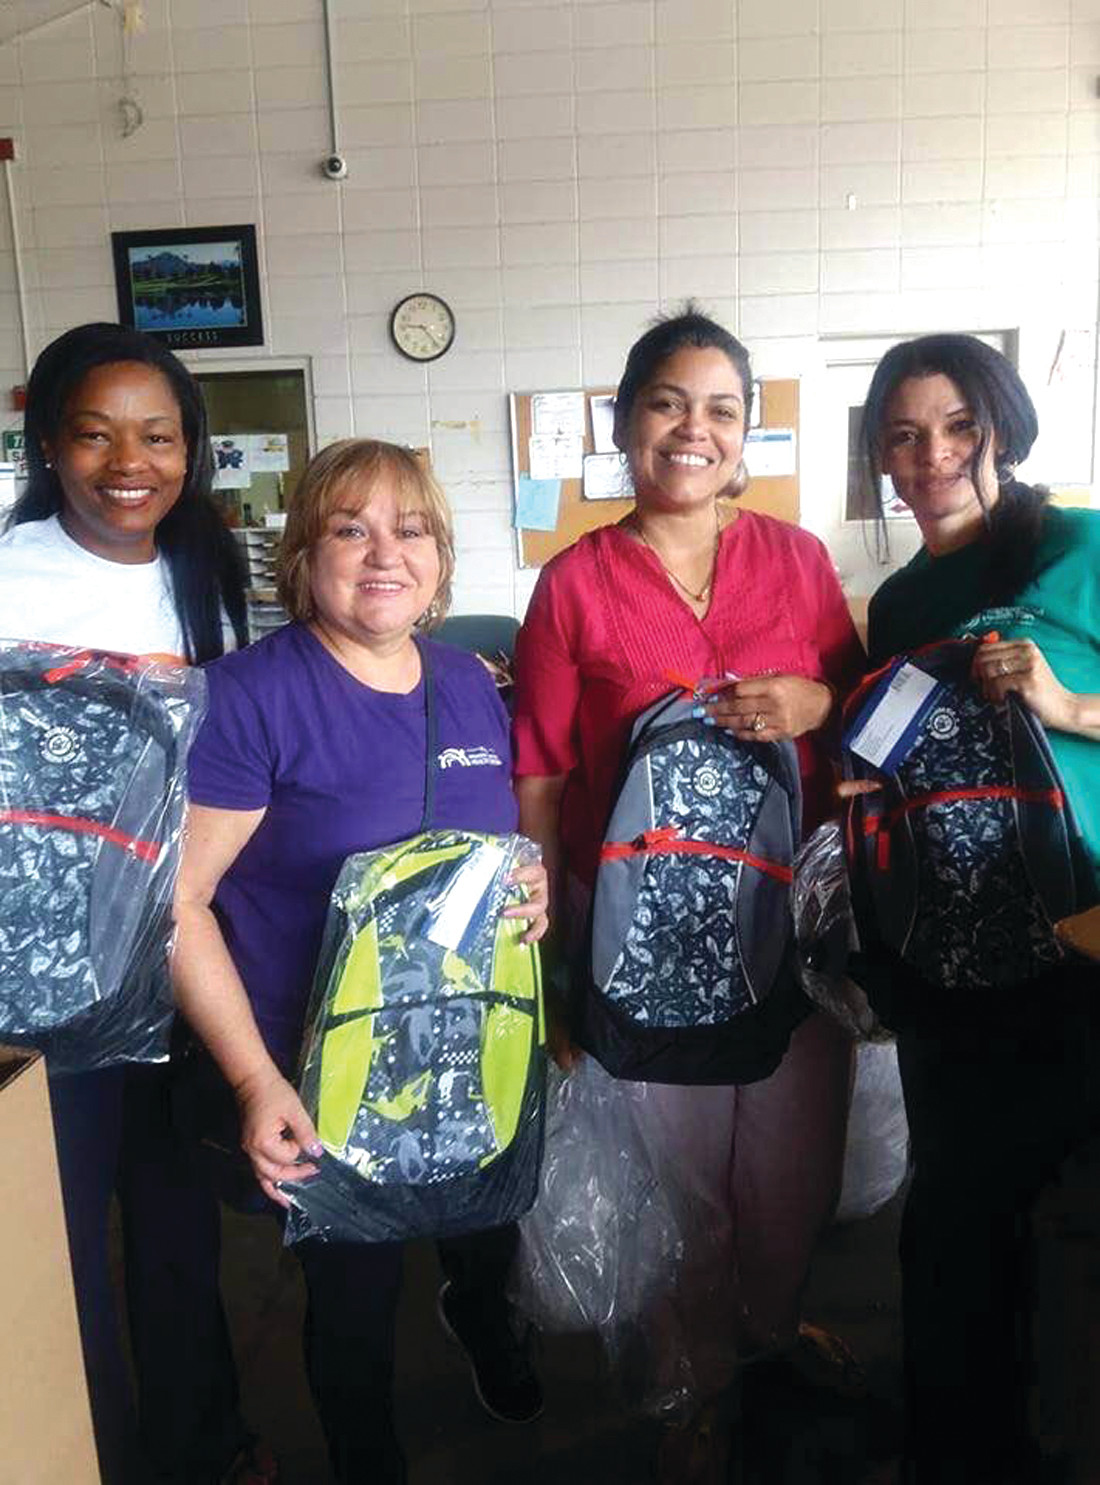 BACKPACK DELIVERY: From left to right, Grace González and Doris De Los Santos (members of the organization Executive Board) and Adriana Vargas and Obed Papp, from the Providence Health Centers Association and the Office of Healthy Communities. The picture was taken during the volunteer packing day the organization hosted in July to stuff the backpacks with school supplies that will be distributed.